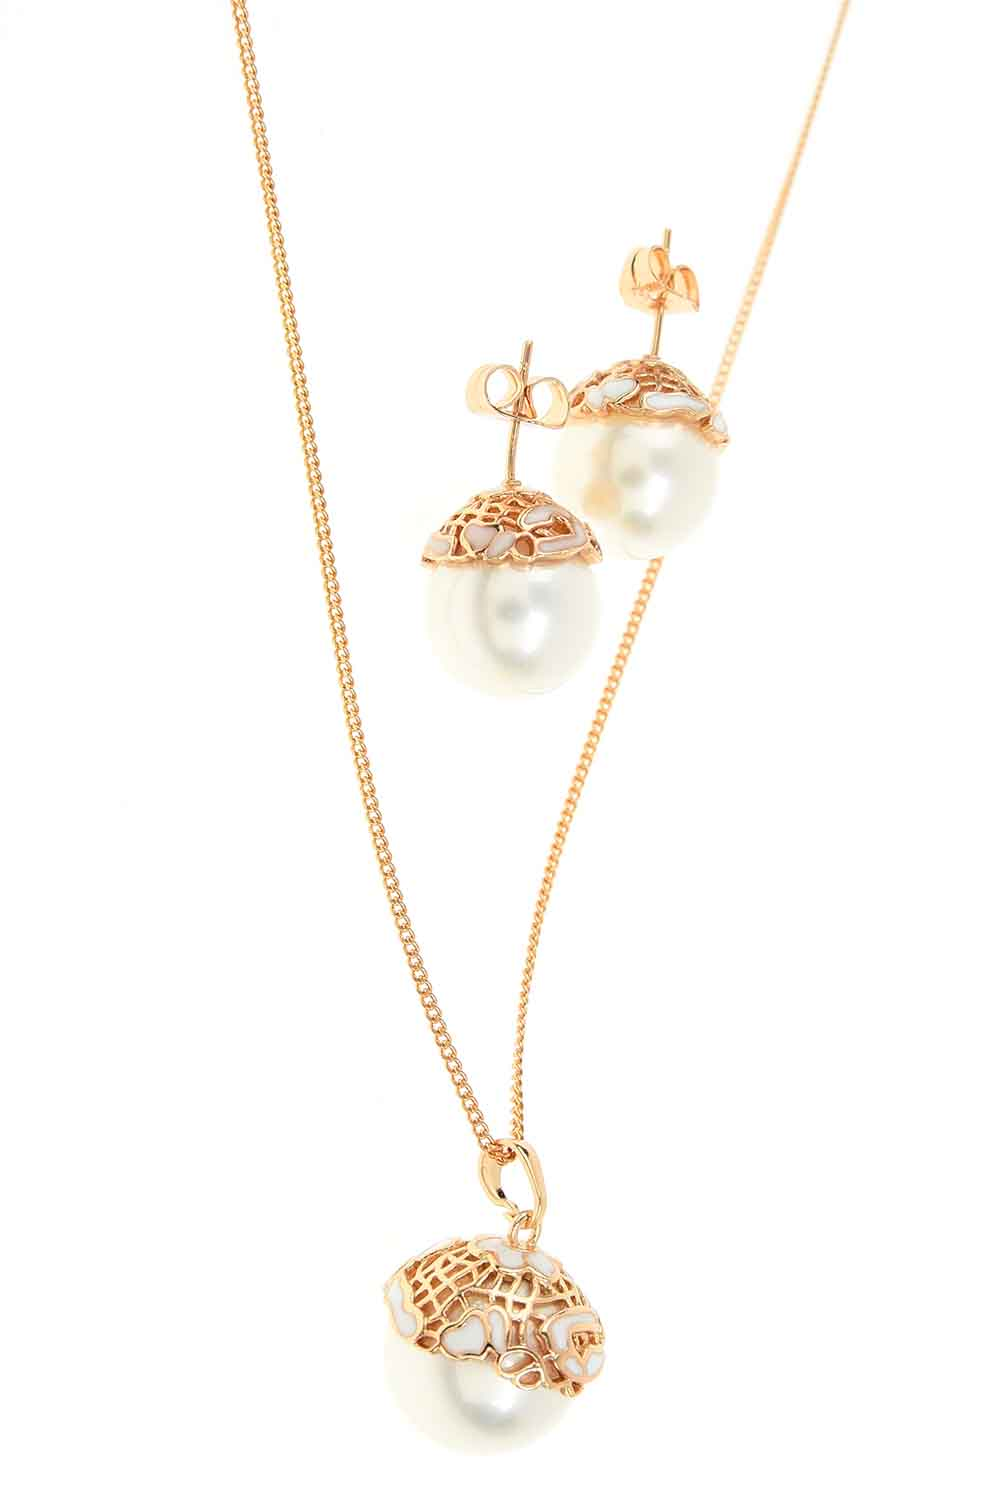 MIZALLE Pearl Detailed Necklace And Earring Set (St) (1)